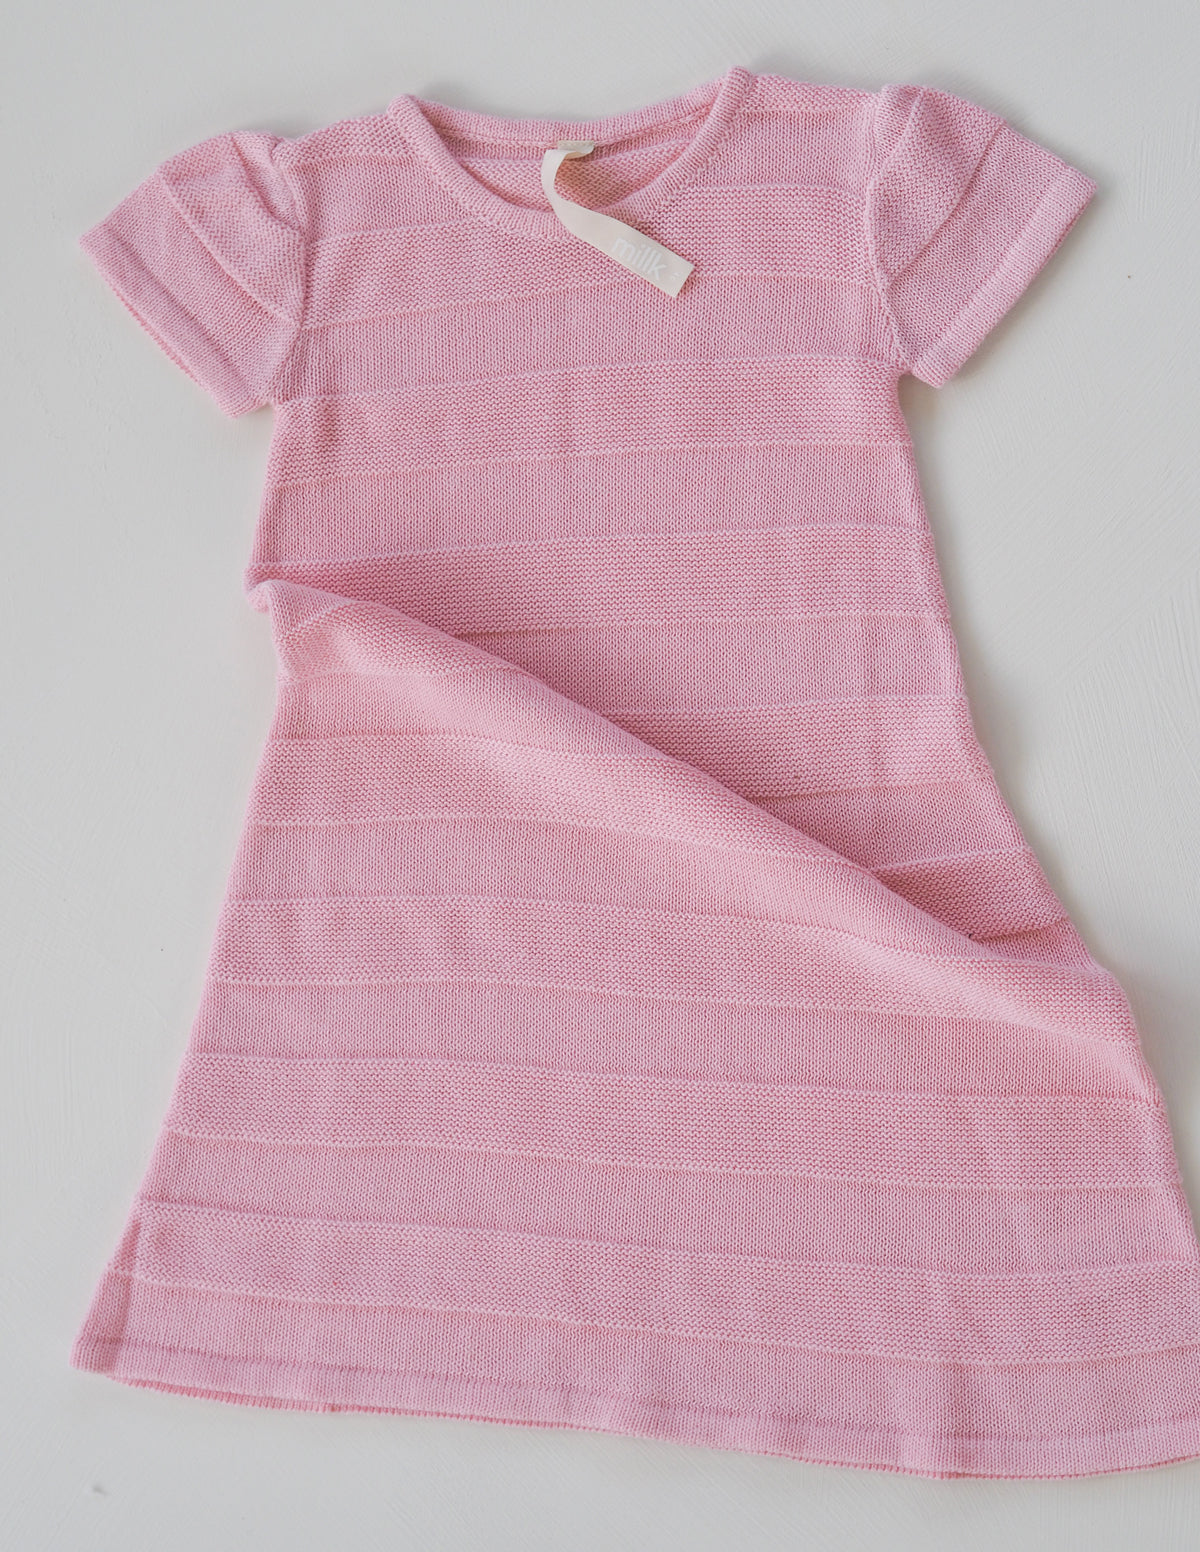 The Weekend Dress - Blush